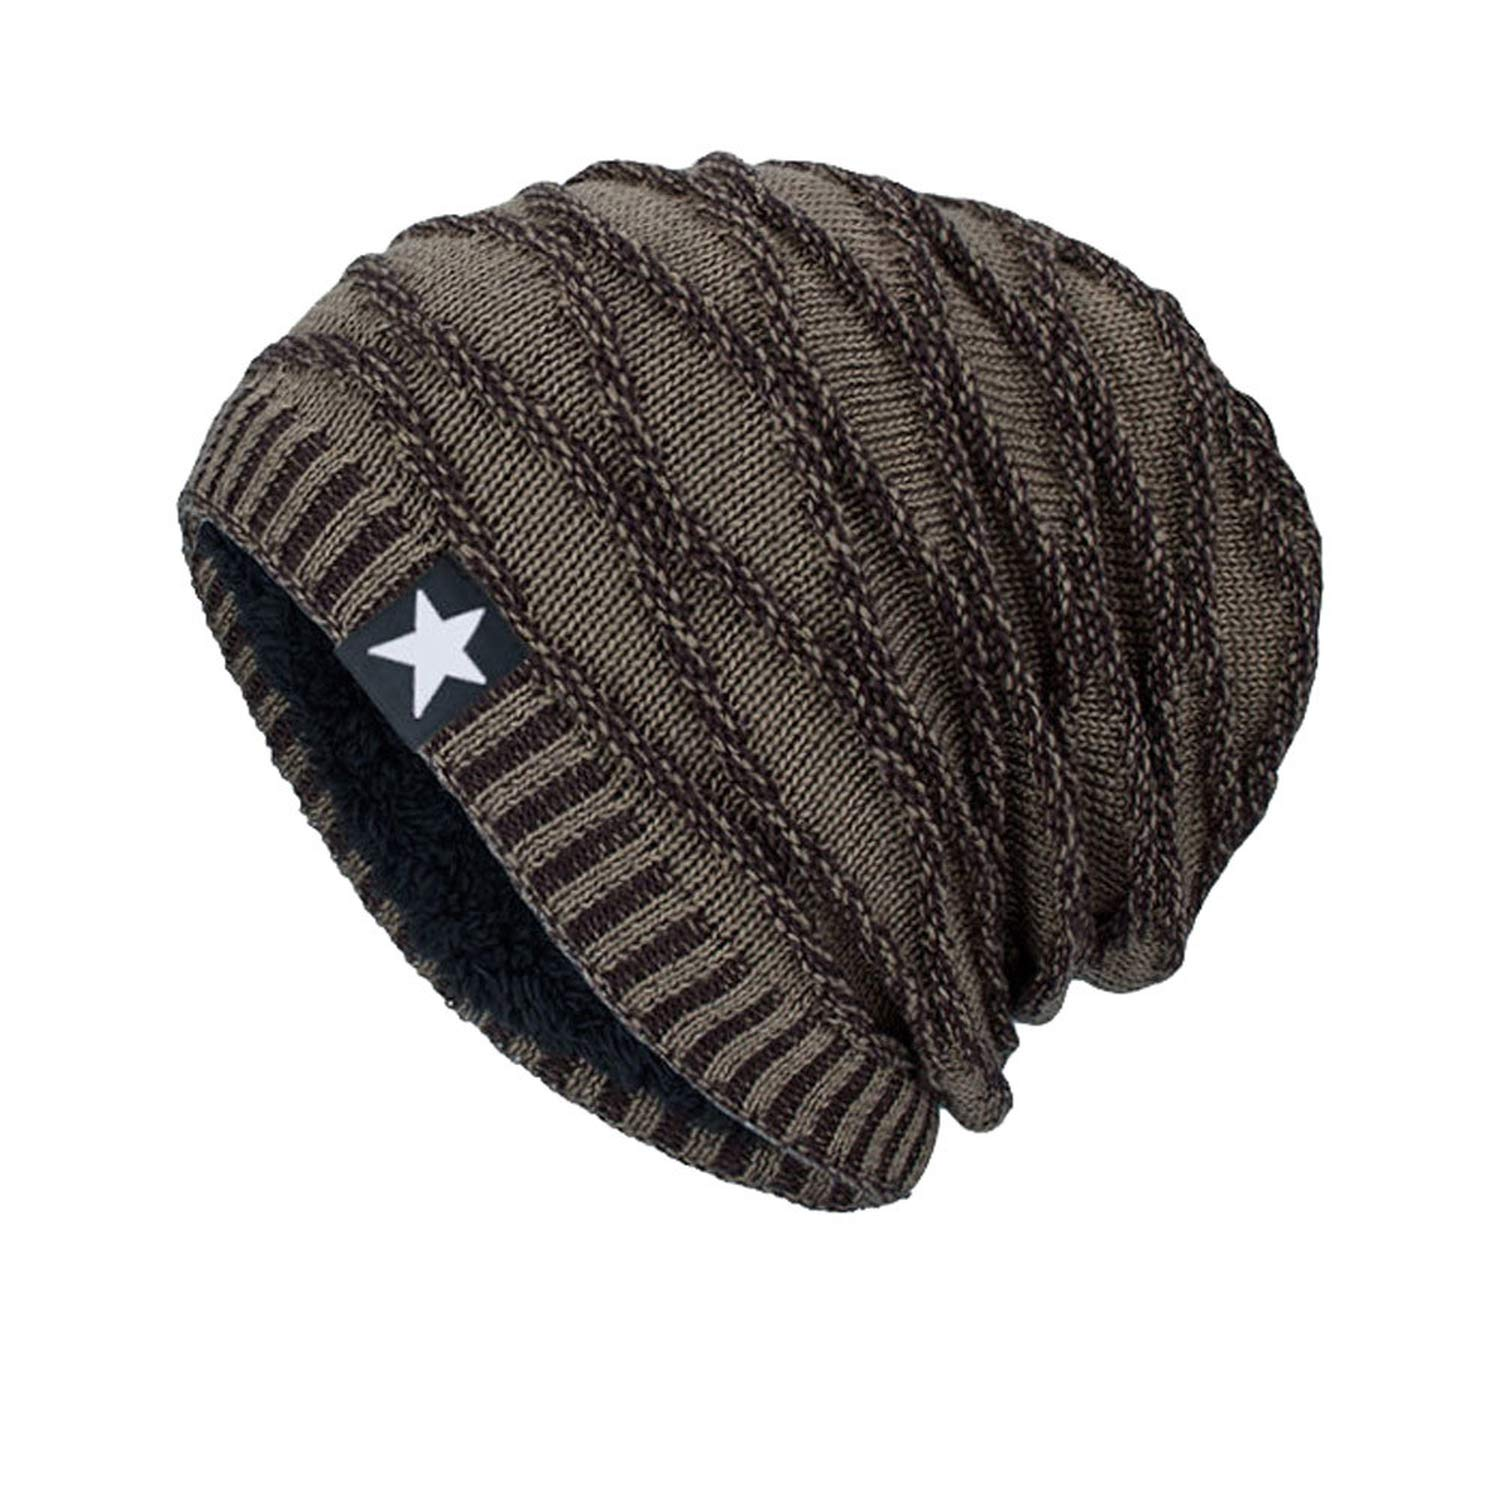 Unisex Knitted Warm Cap for Men Beanie Cap Warm Winter Outdoor Casual Hat